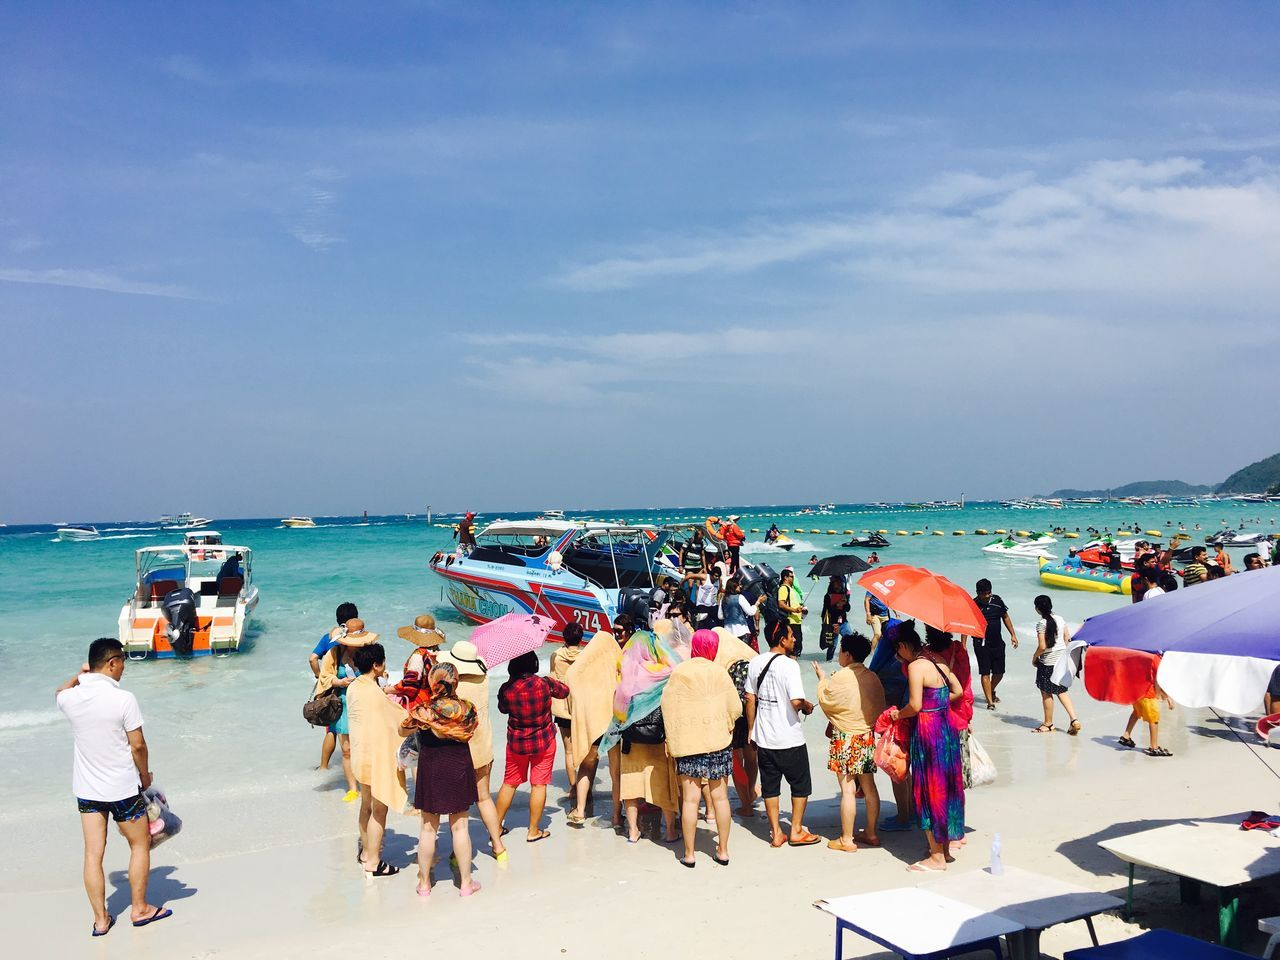 Large Group Of People Beach Outdoors Sea Iphonephotography Bestoftheday Selective Focus Travel Destinations Awesome_view AdventureRandomness Shot Of The Day Horizon Over Water Blue Sea Blue Sky And Clouds People @ Pataya Beach Thailand